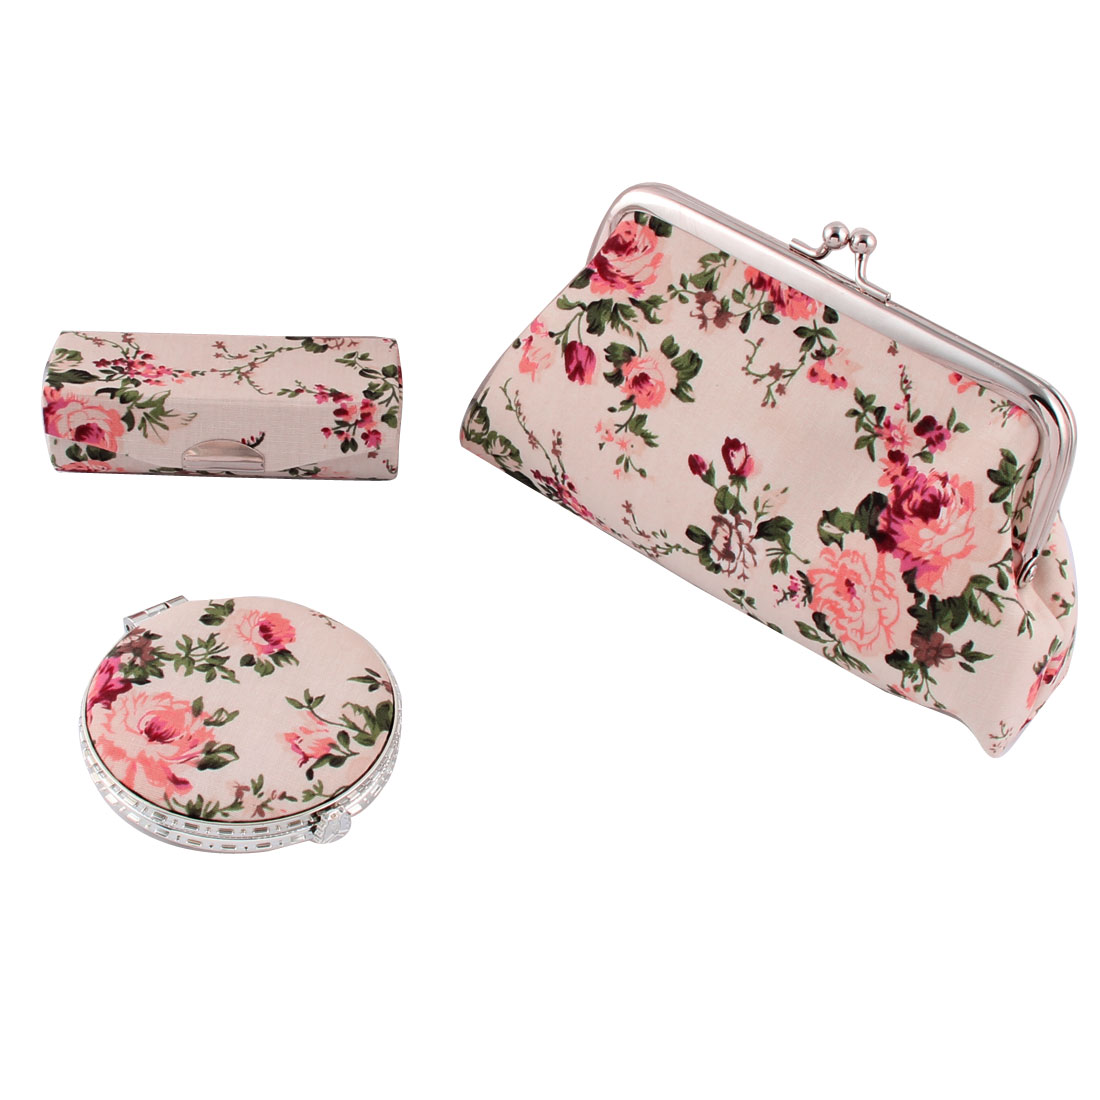 Lady Party Shopping Makeup Peony Pattern Wallet Mirror Lipstick Case 3 in 1